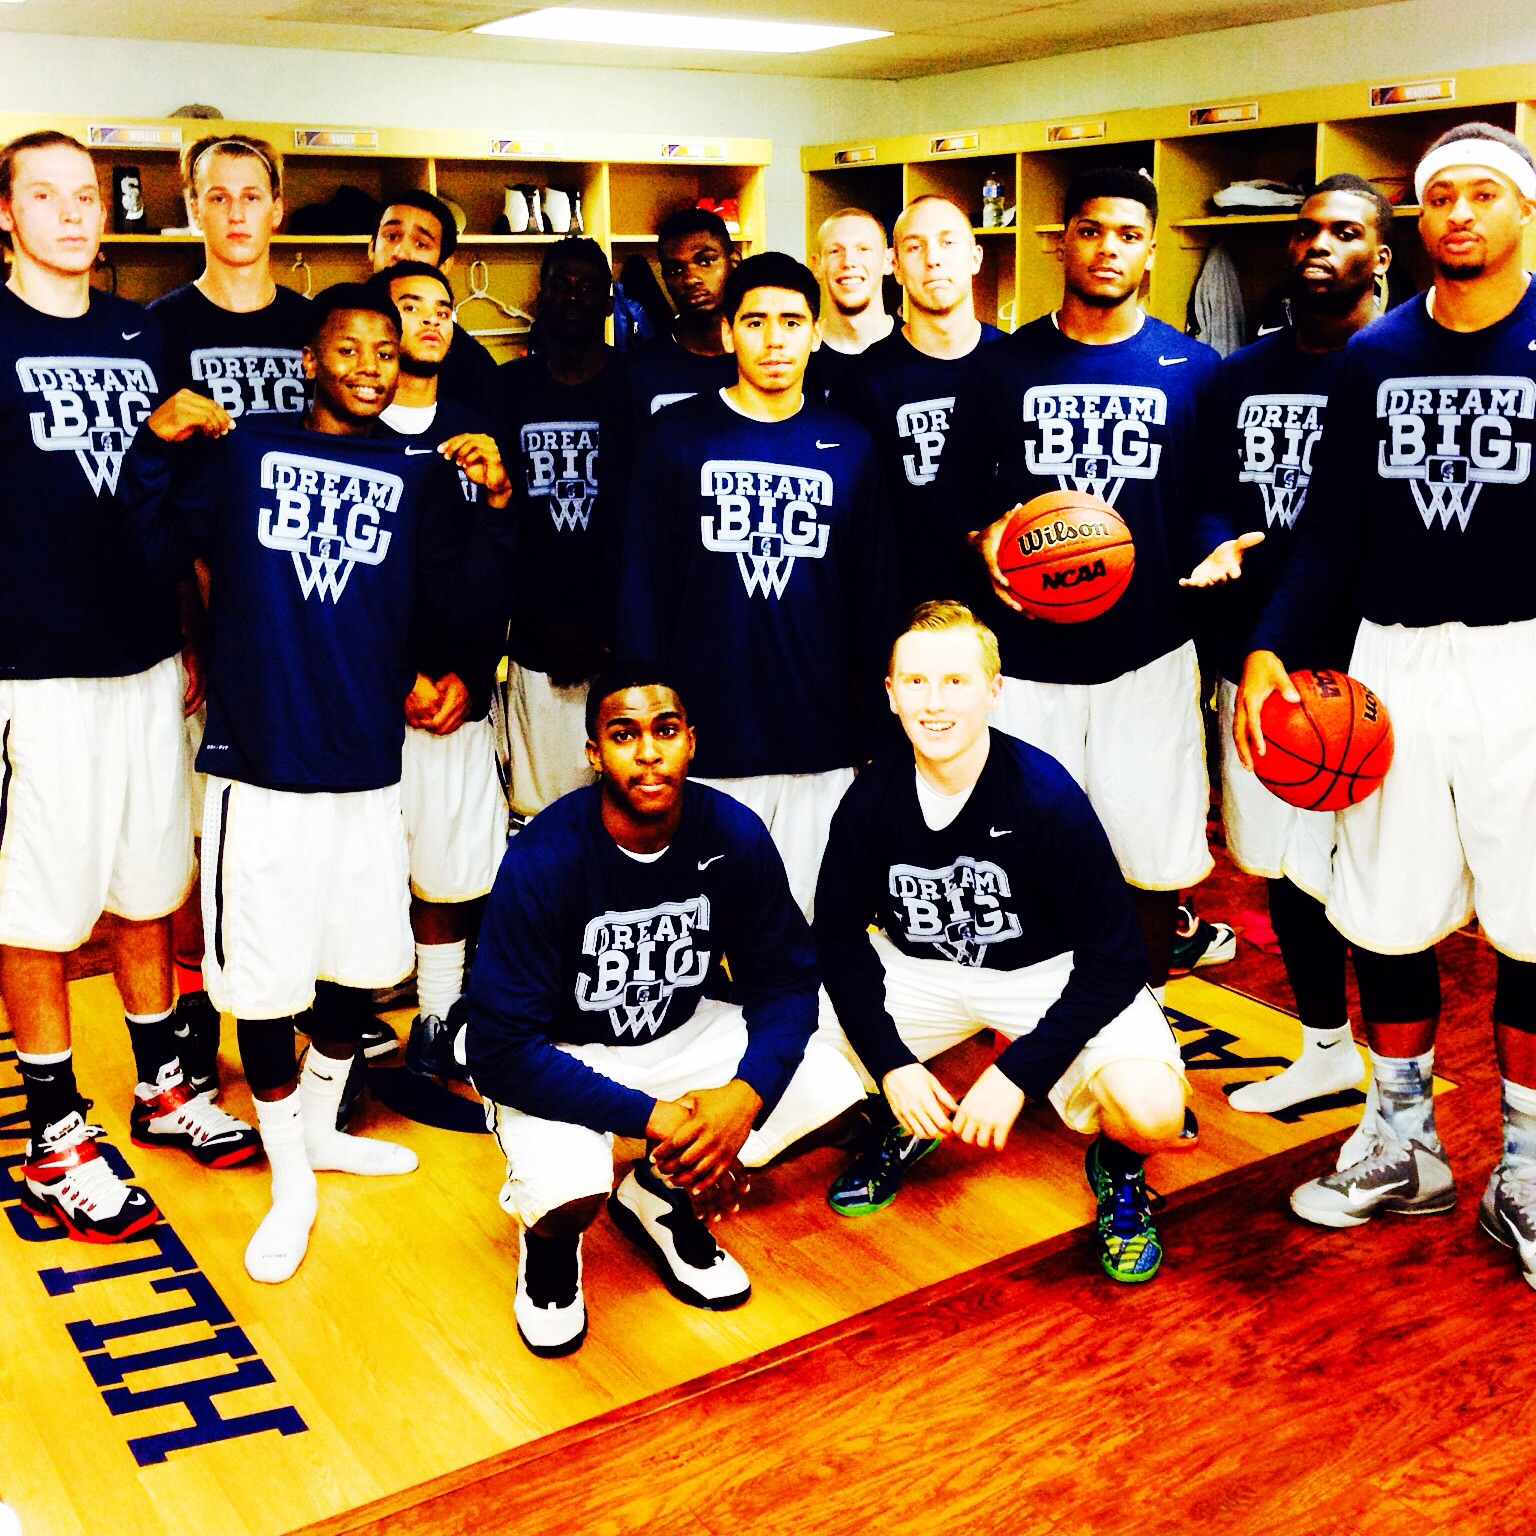 """Hillsdale Baptist College Saints-They wore our """"Dream Big"""" shirts during the entire 2015 season to help spread the word! Thanks Coach Berokoff!"""